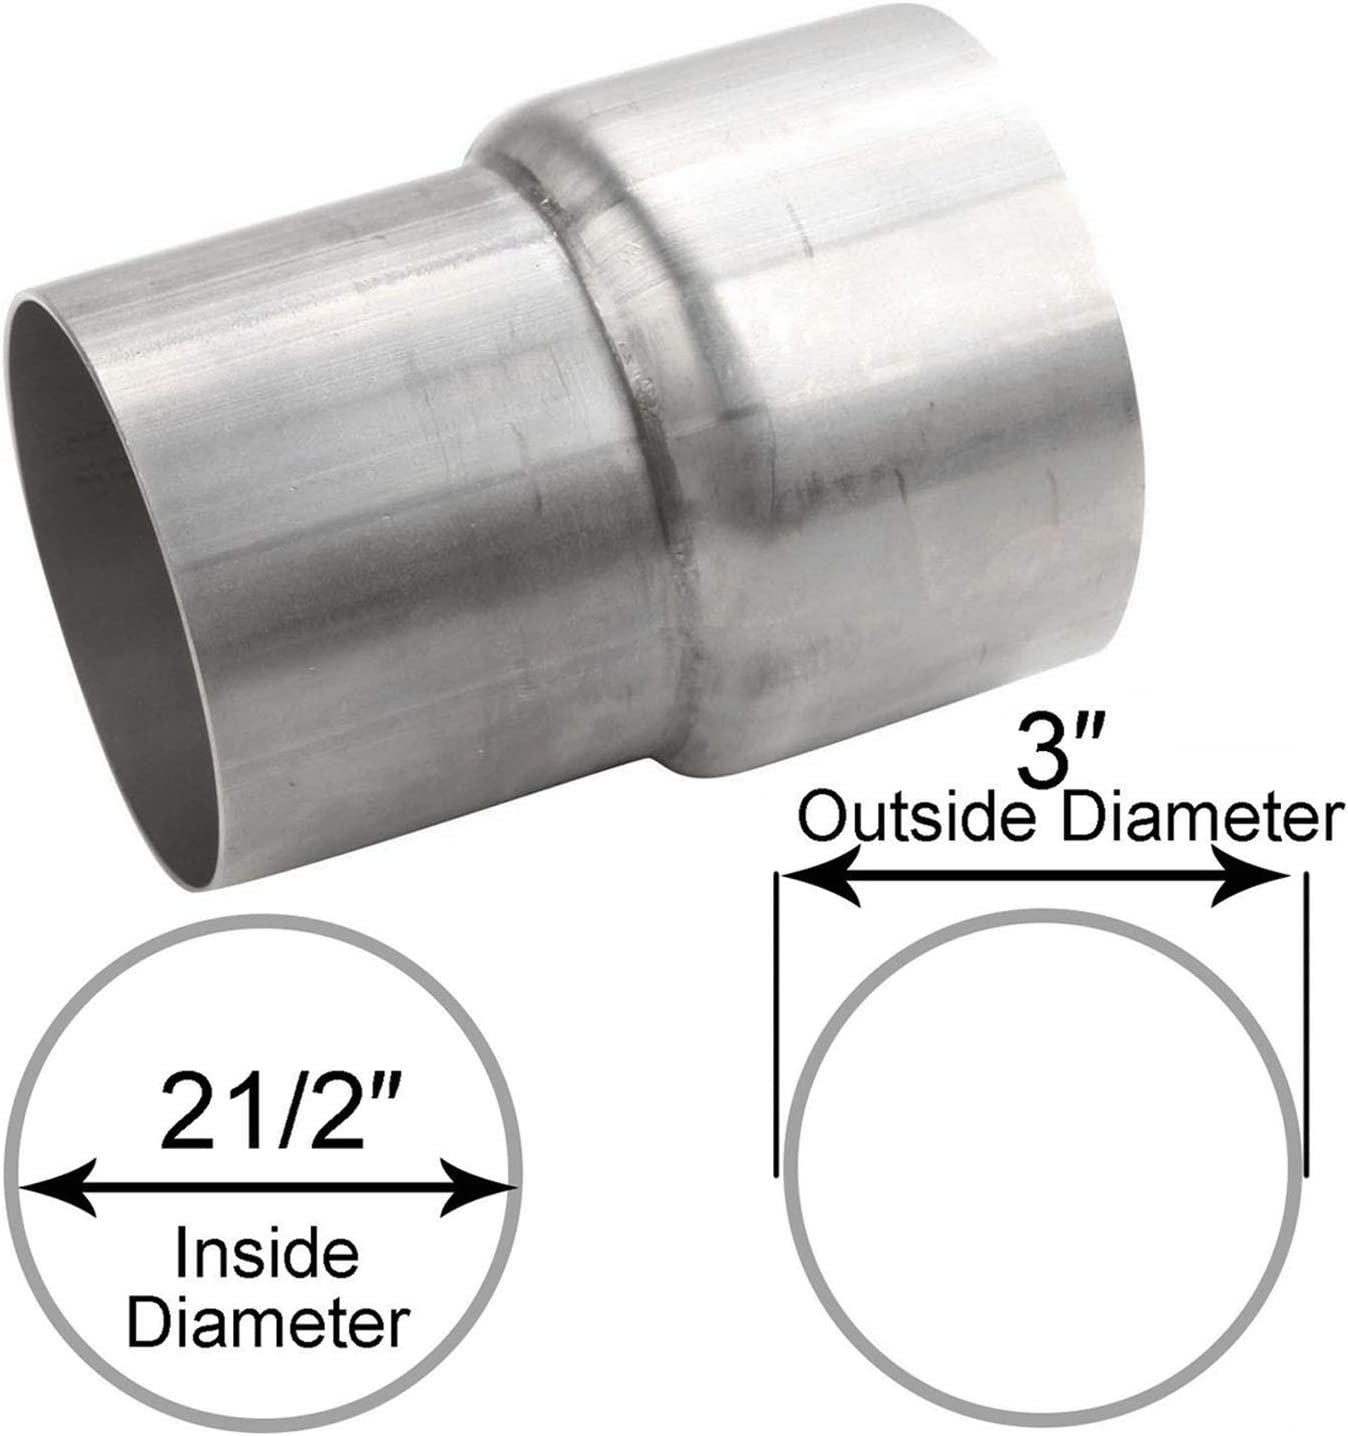 ay autoparts 2 5 inch id to 3 inch od exhaust pipe component to pipe adapter reducer connector t201 stainless steel universal